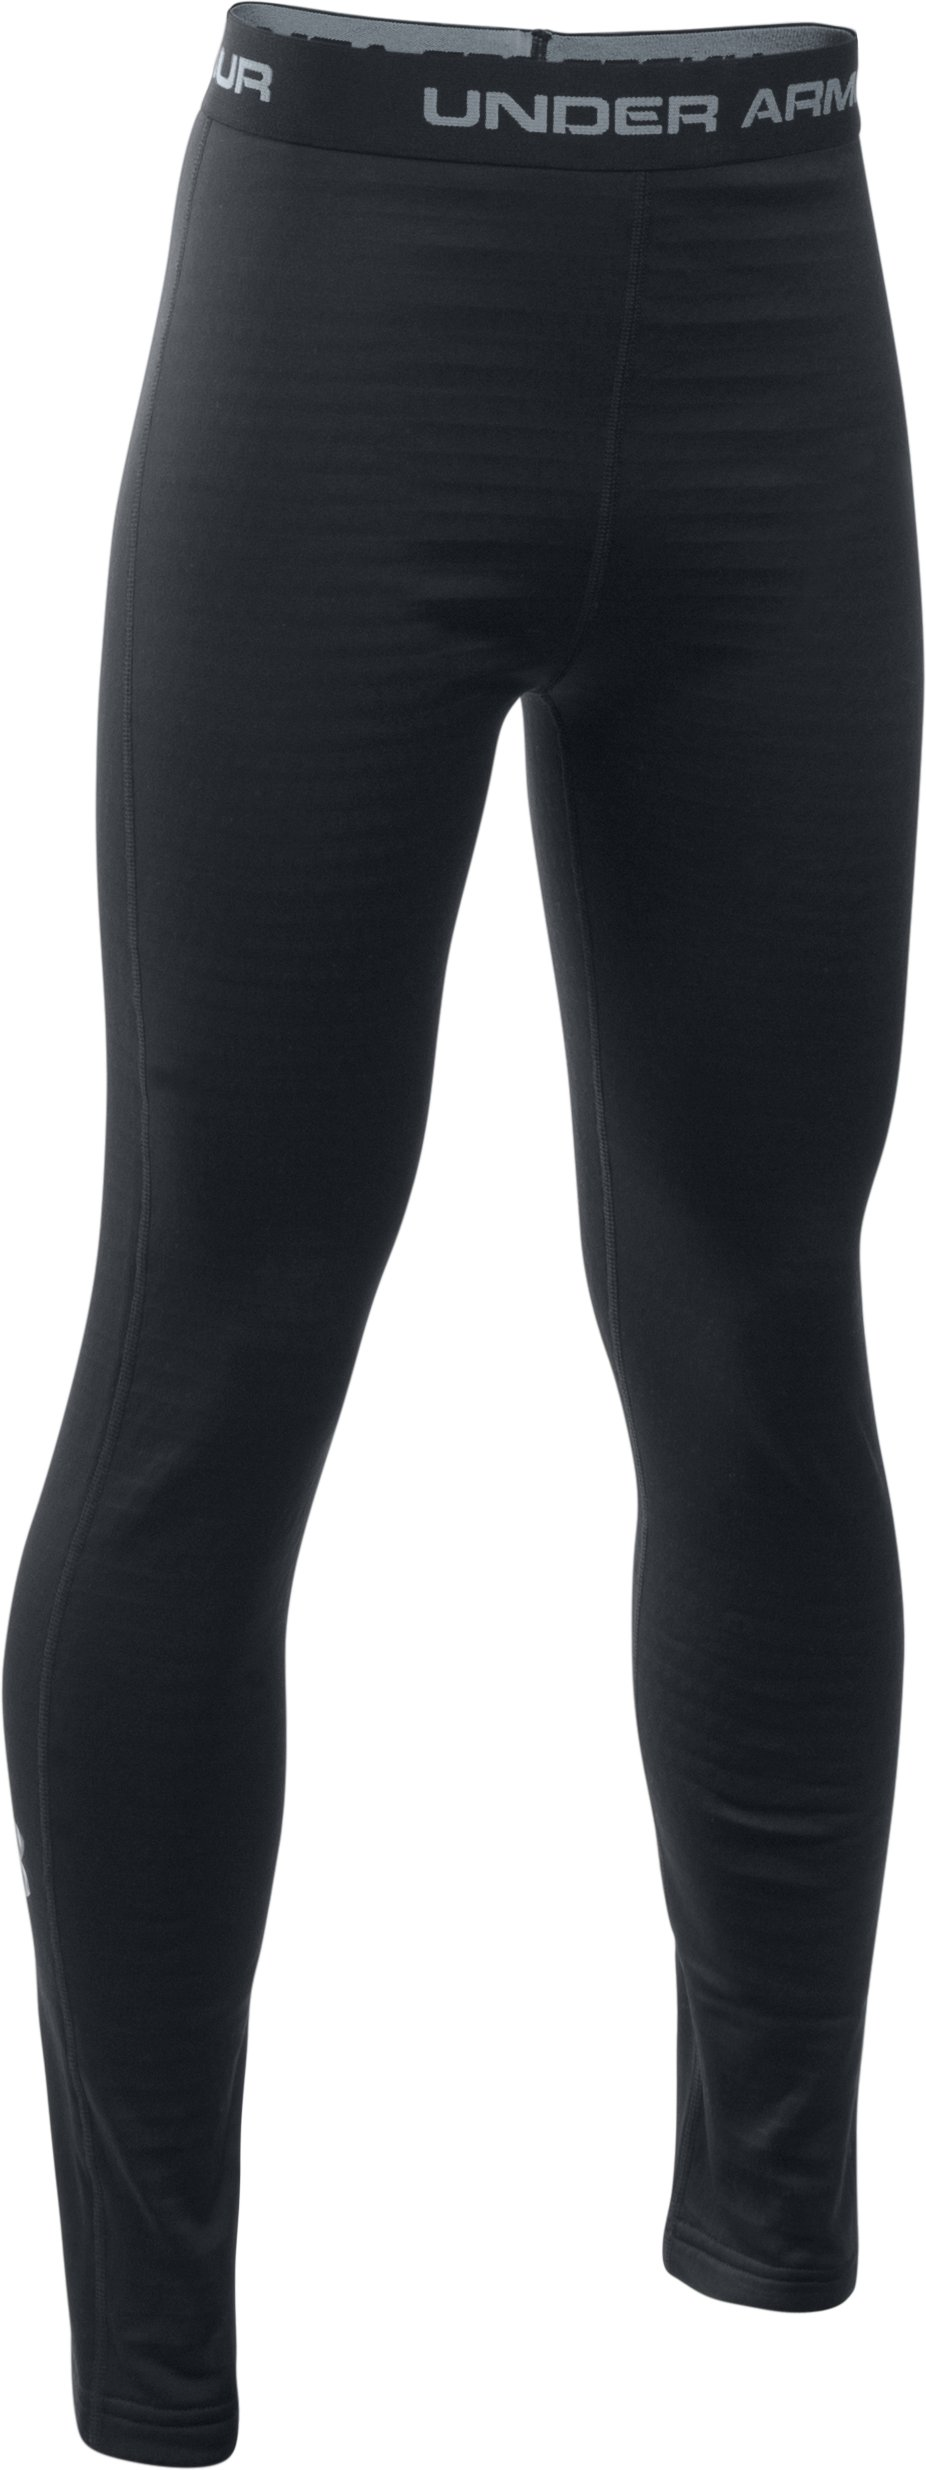 Boys' UA Base™ 2.0 Leggings, Black